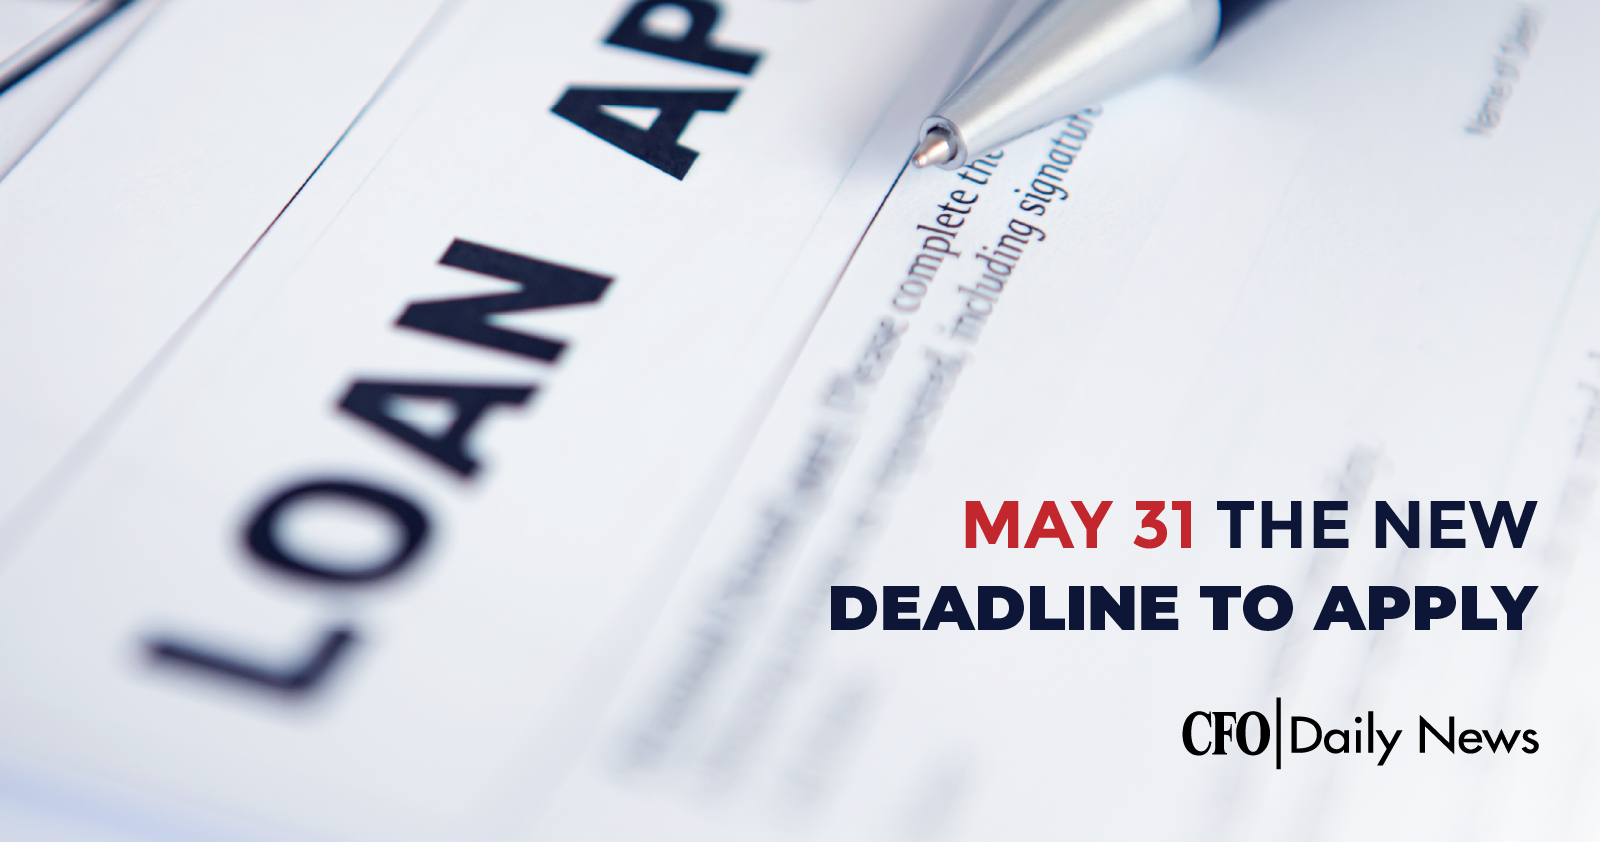 may 31 the new deadline to apply